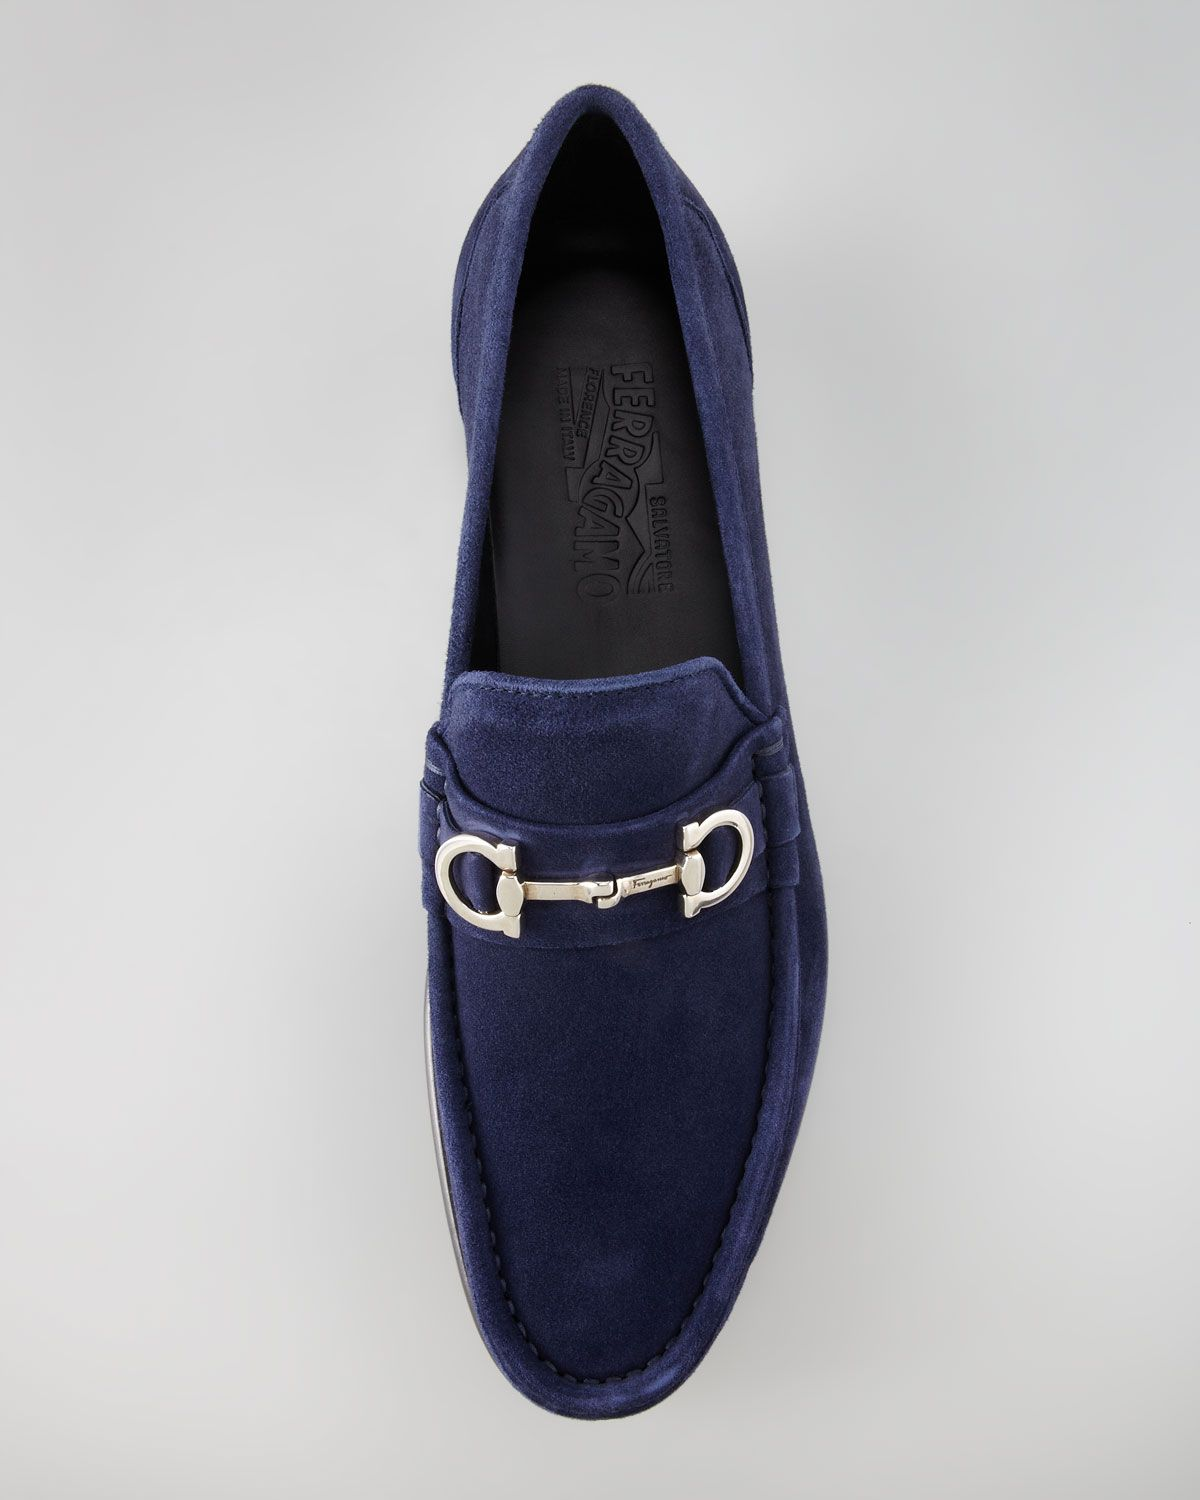 26fd23f305a53 Salvatore Ferragamo / Giostra Suede Loafer, Navy / Achieve a look of  classic, instantly recognizable luxury with the Salvatore Ferragamo Giostra  suede ...